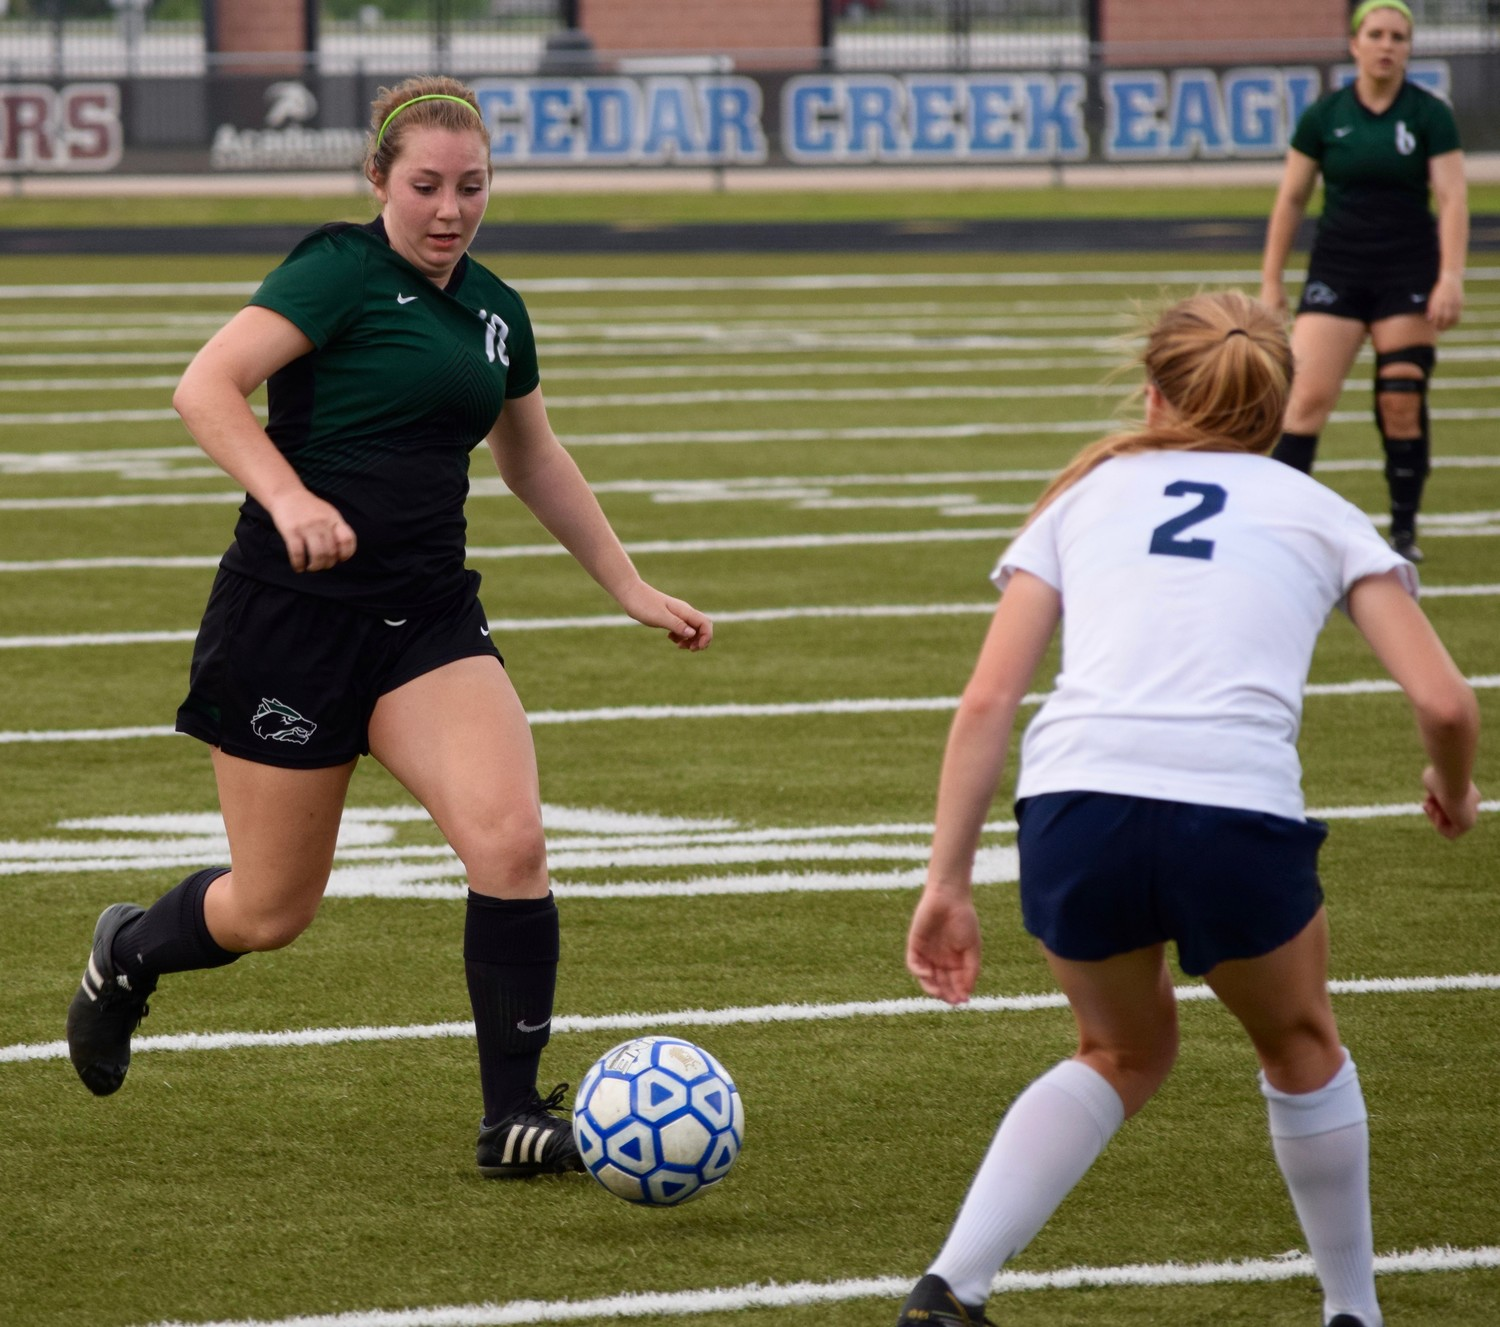 Ava Bear and Cedar Park beat Tomball Memorial 1-0 in Bastrop on Friday to advance to the regional semifinals.